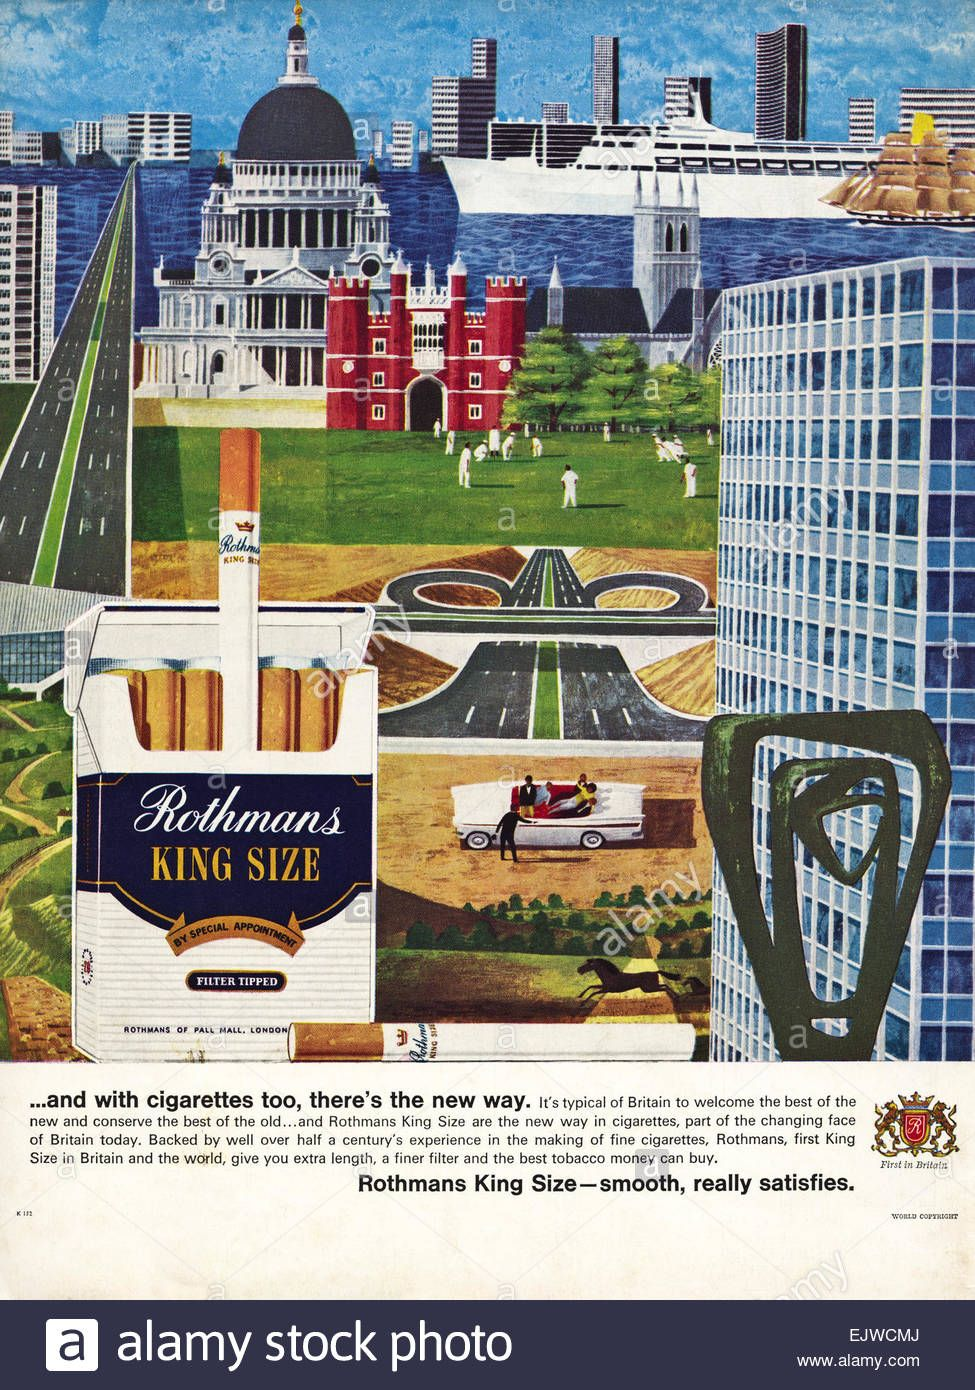 1960s Adver Magazine Advert For Rothmans King Size Cigarettes Dated 1964 Stock Photo